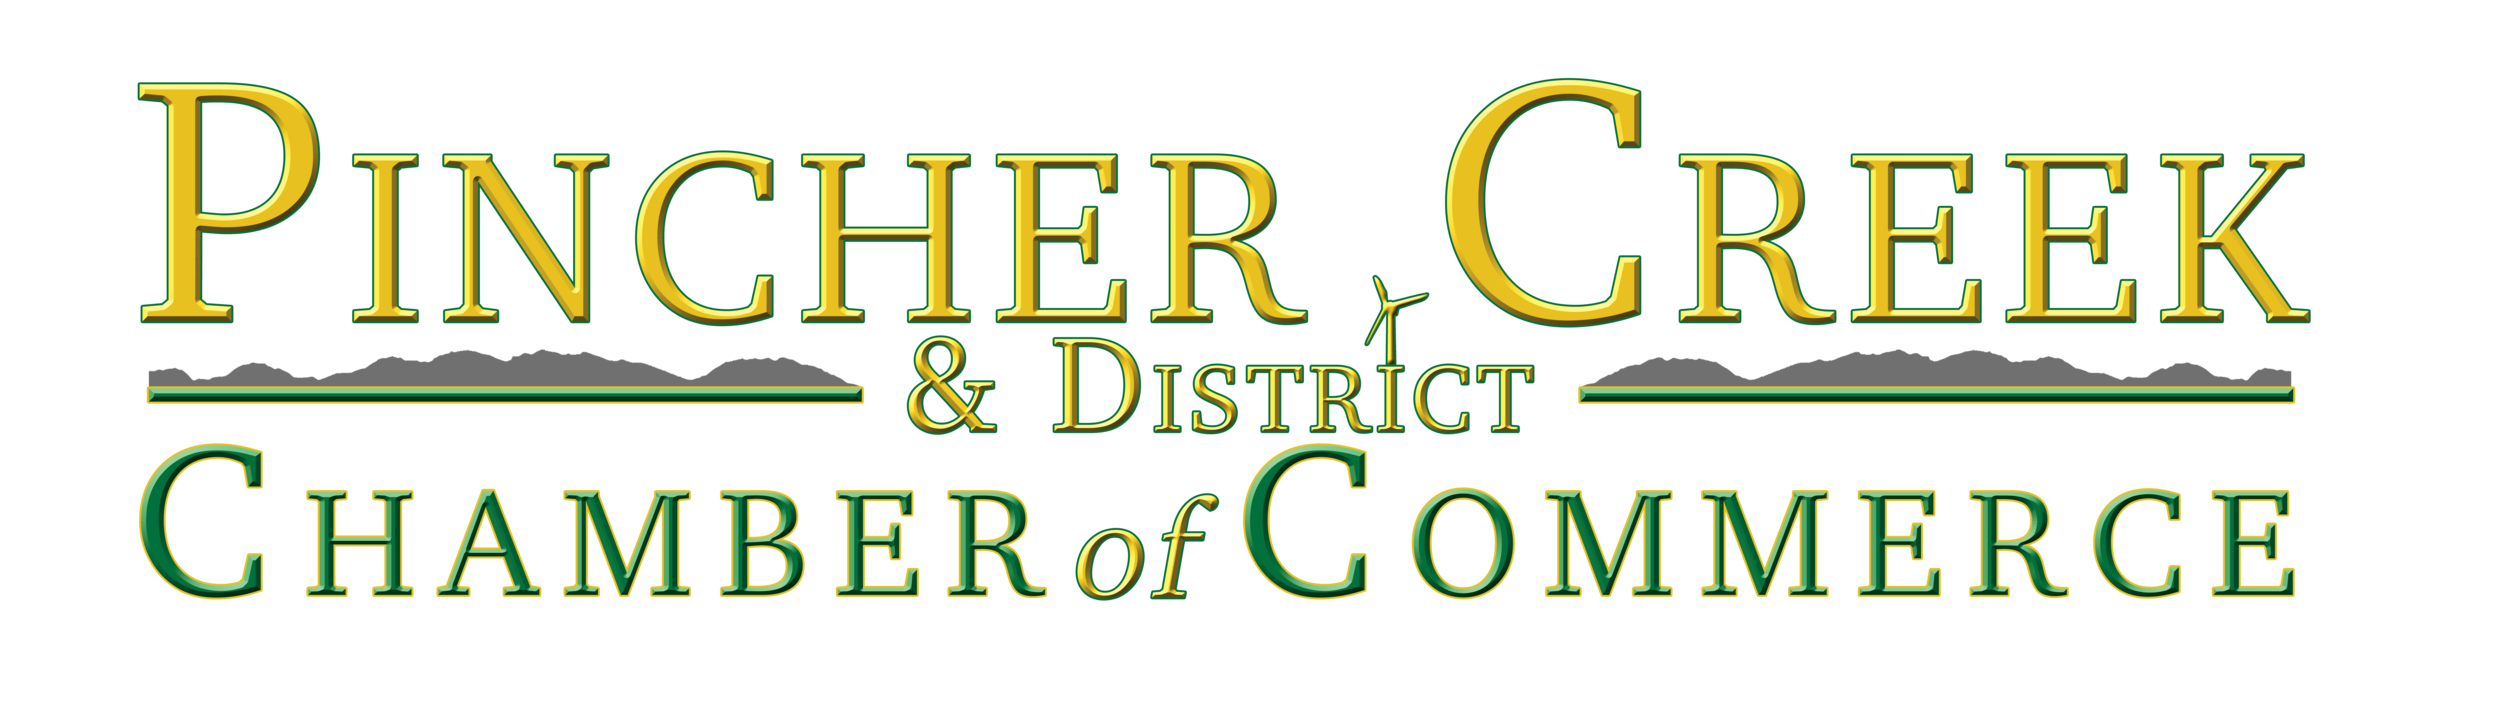 ChamberOfCommerce_logo.png